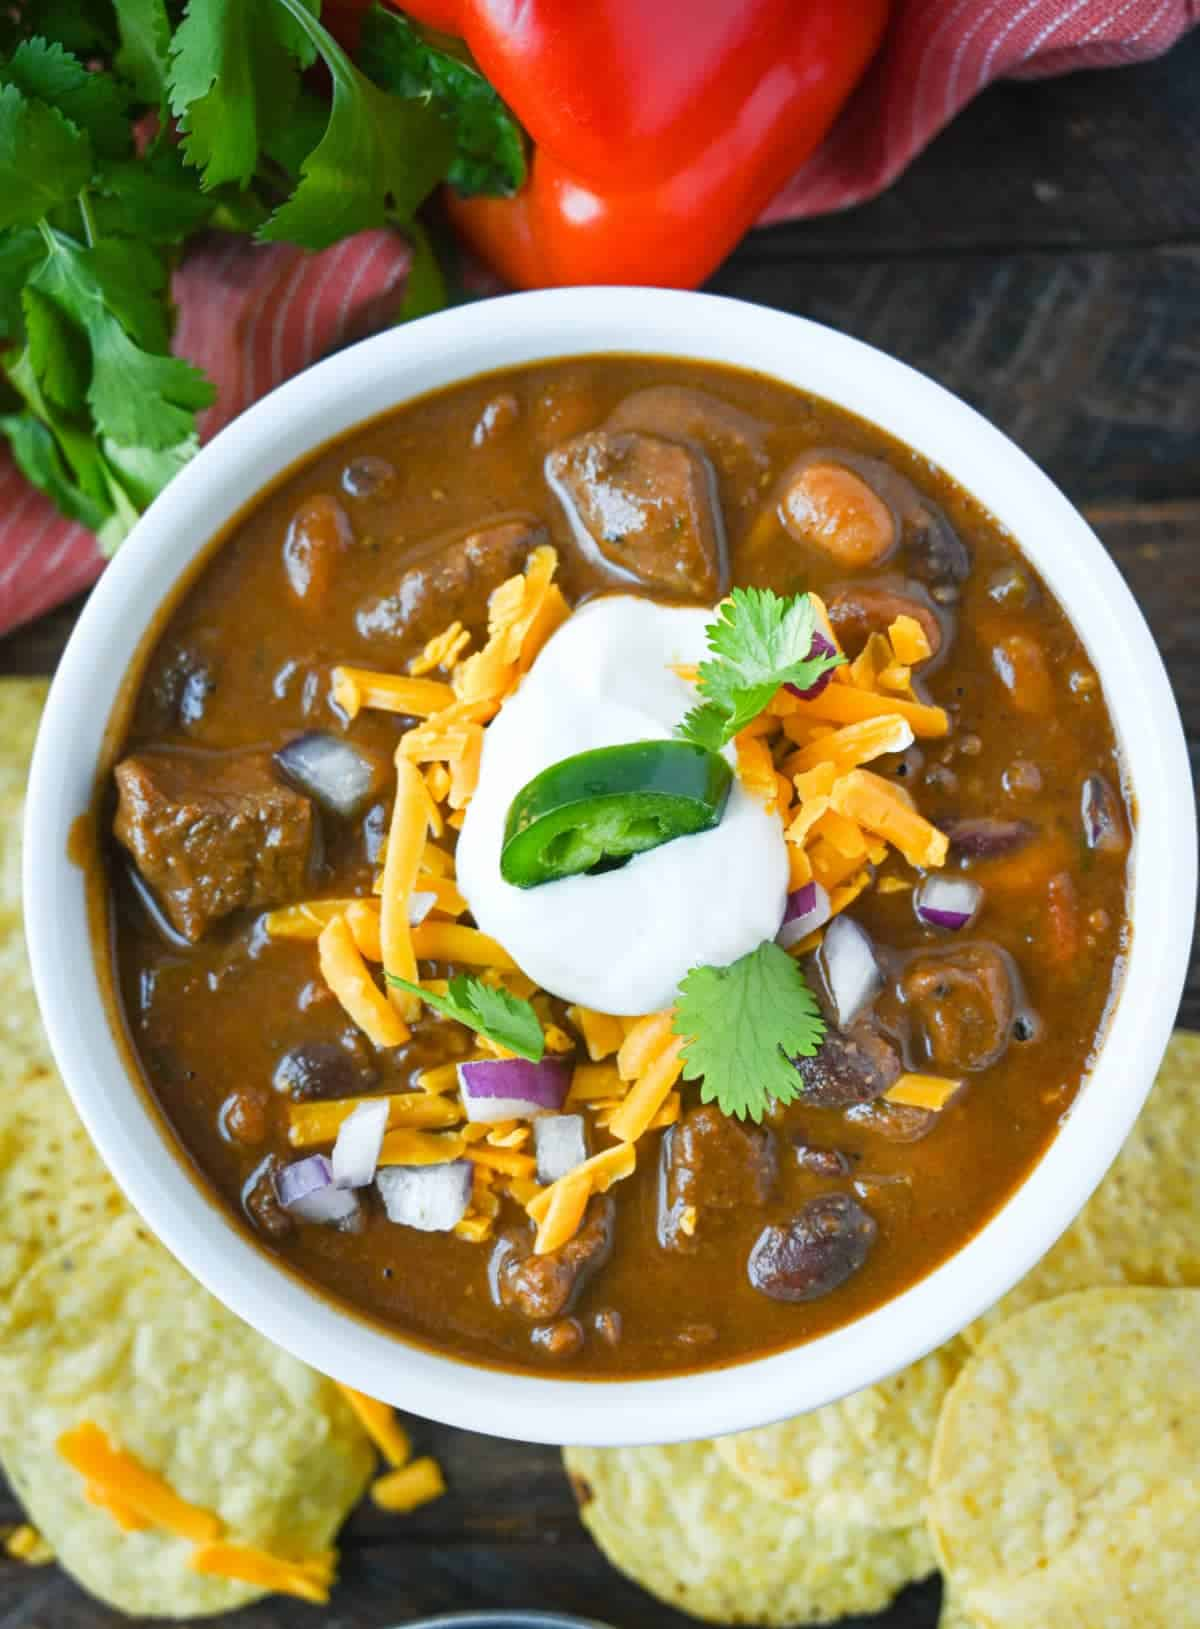 Steak chili with cshredded cheese, onions , sour cream and cilantro on top.